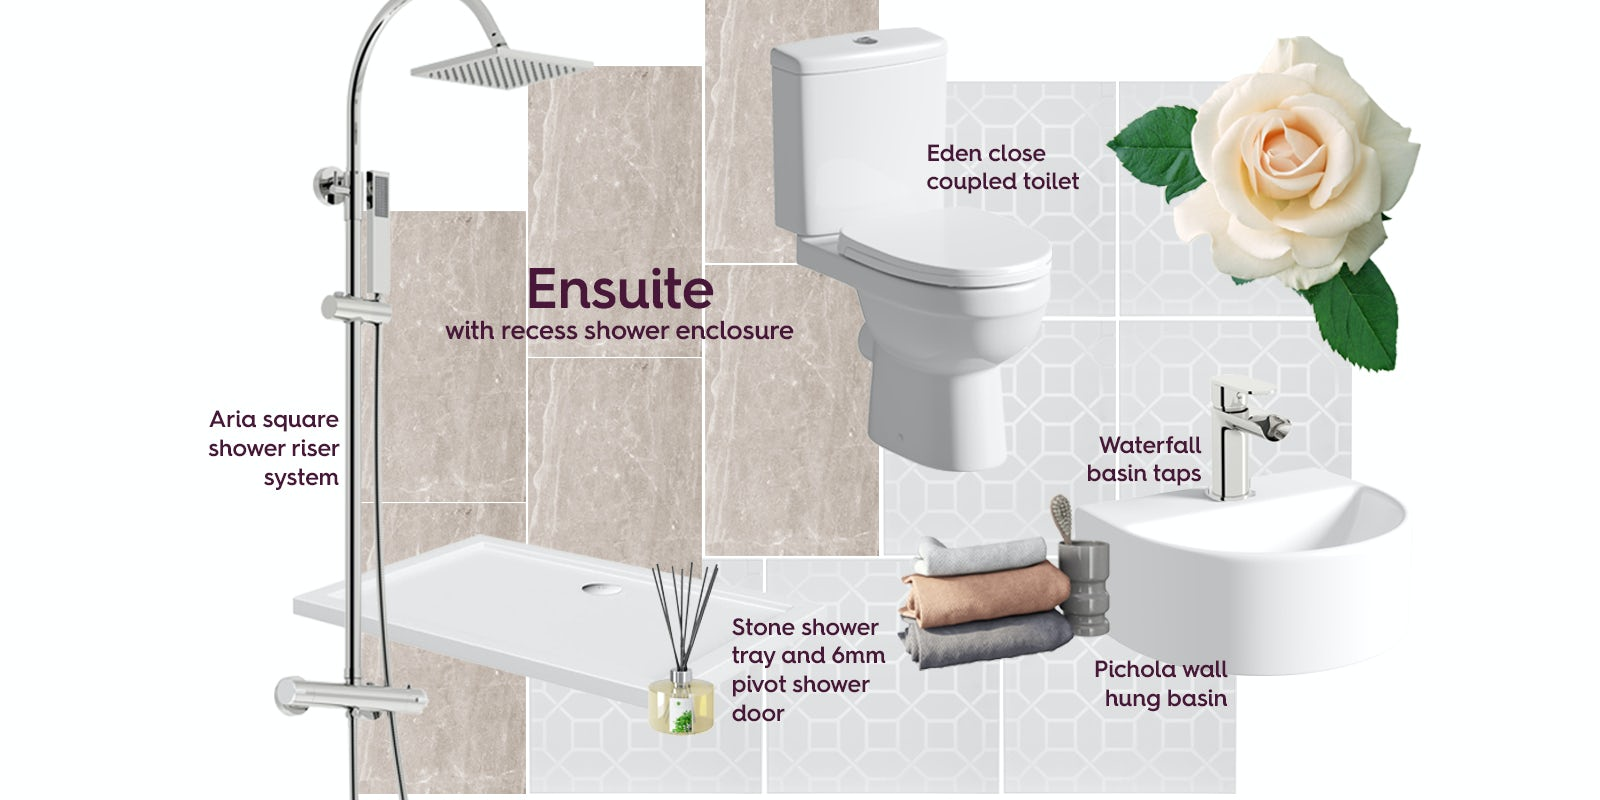 Ensuite with recess shower enclosure mood board